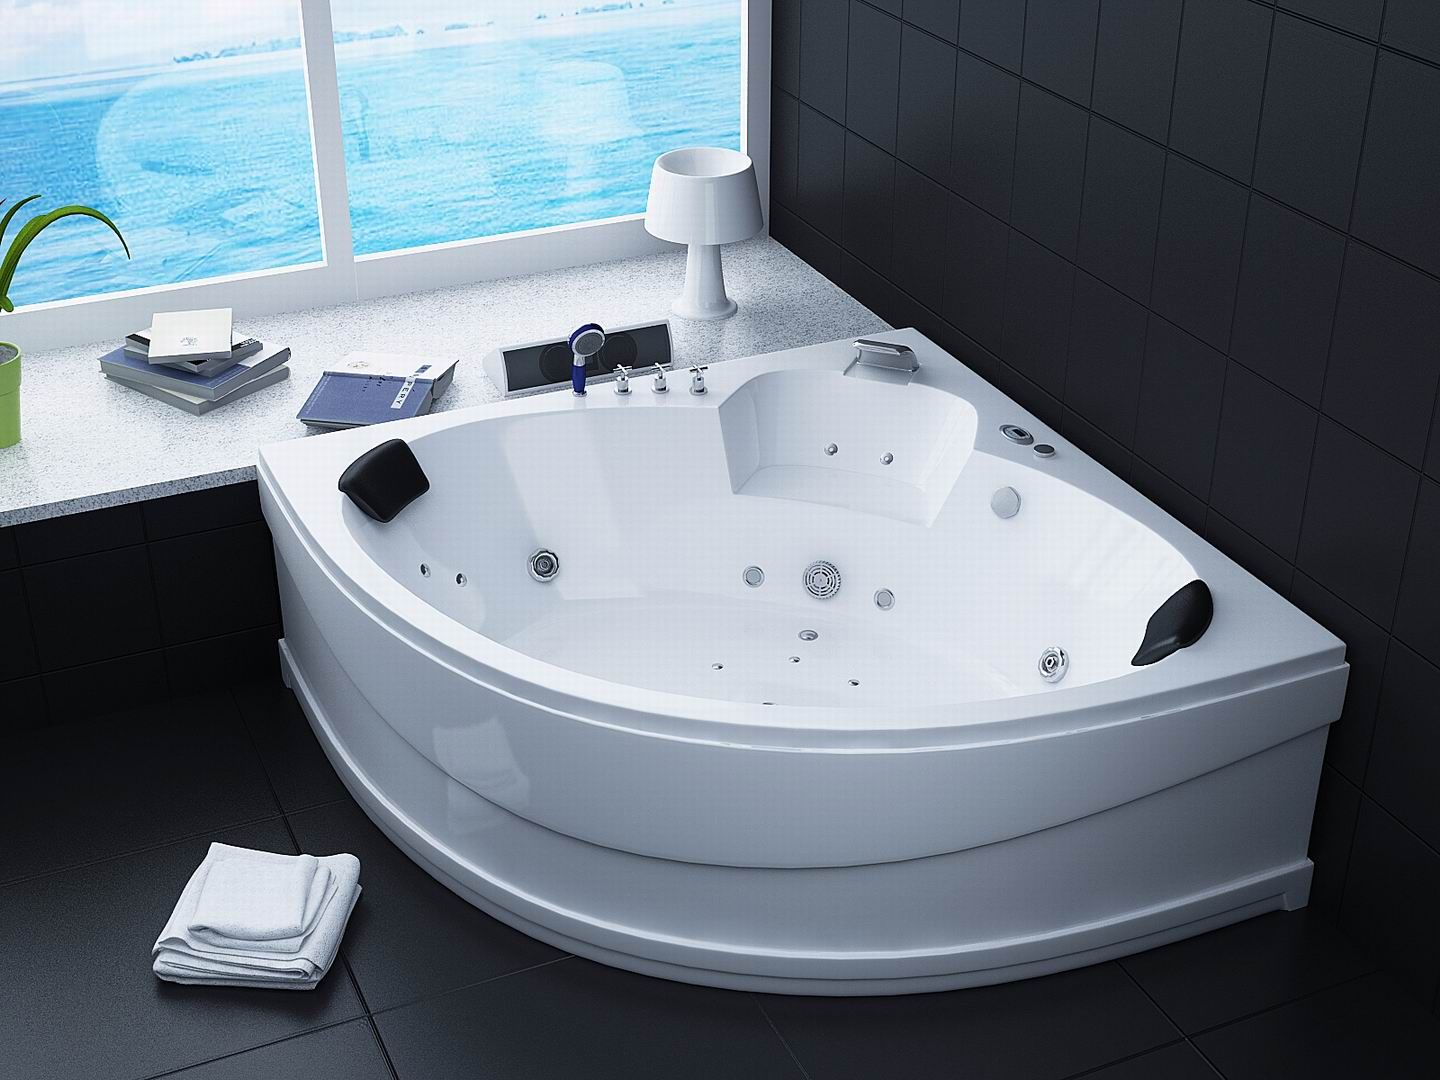 Bathtubs china jacuzzi bathtub mt nr1801 large image for Bathroom ideas jacuzzi tub